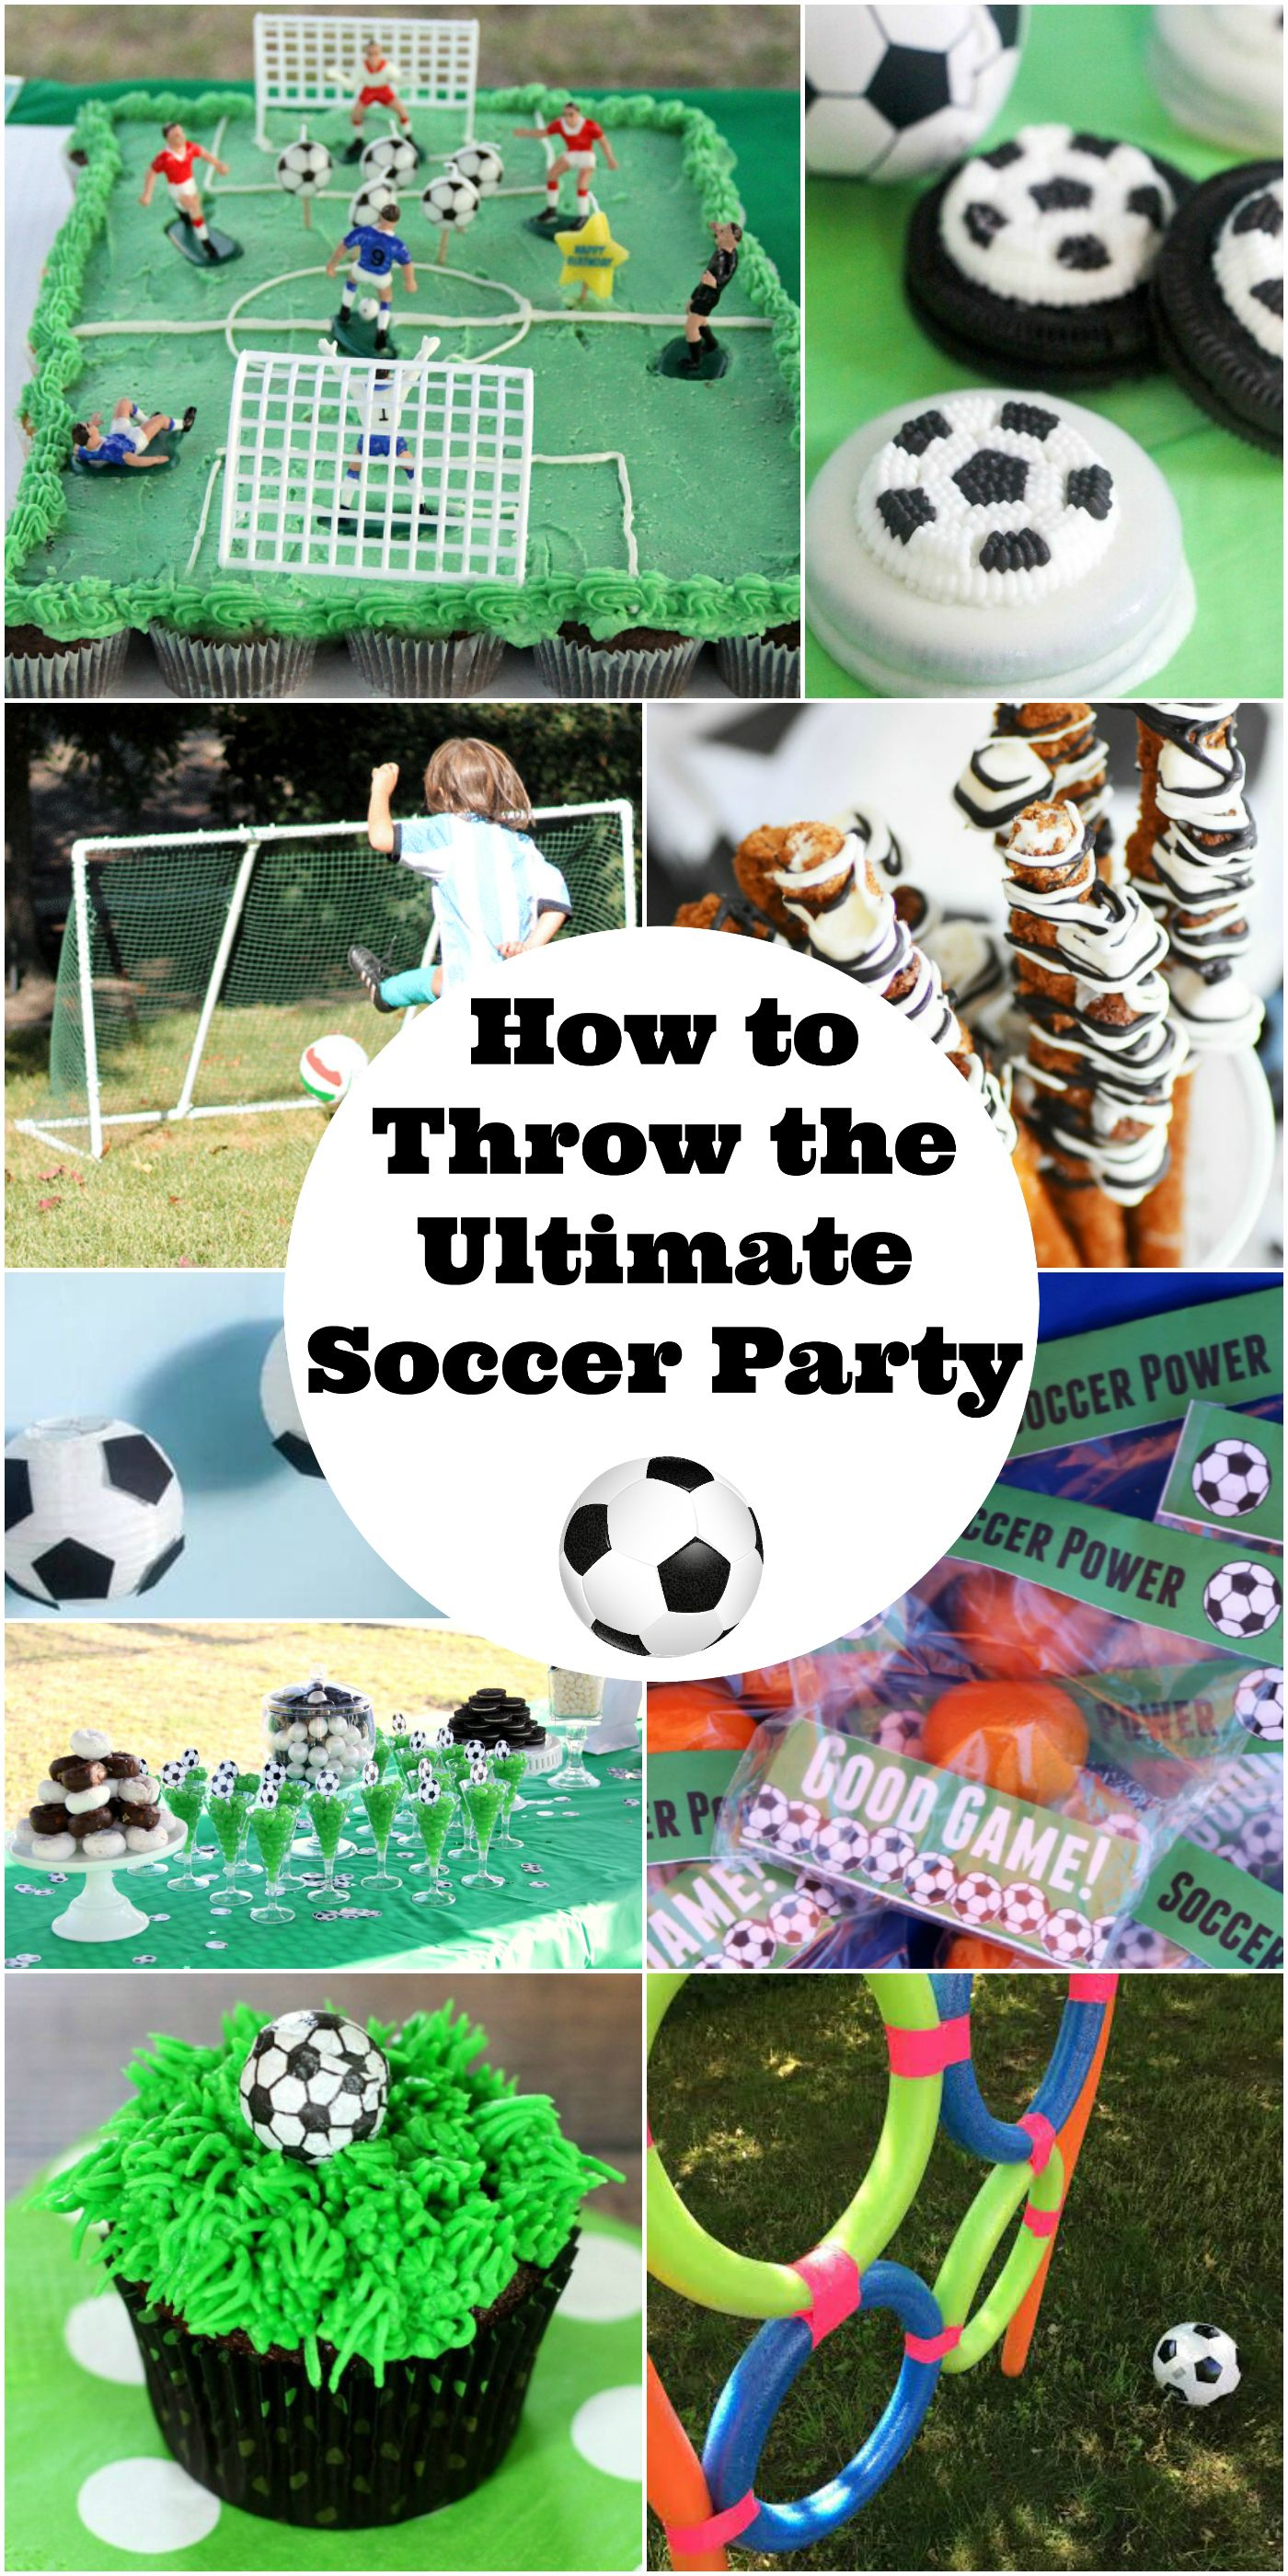 How To Throw The Ultimate Soccer Party - 25 Fun Ideas! | Soccer ...